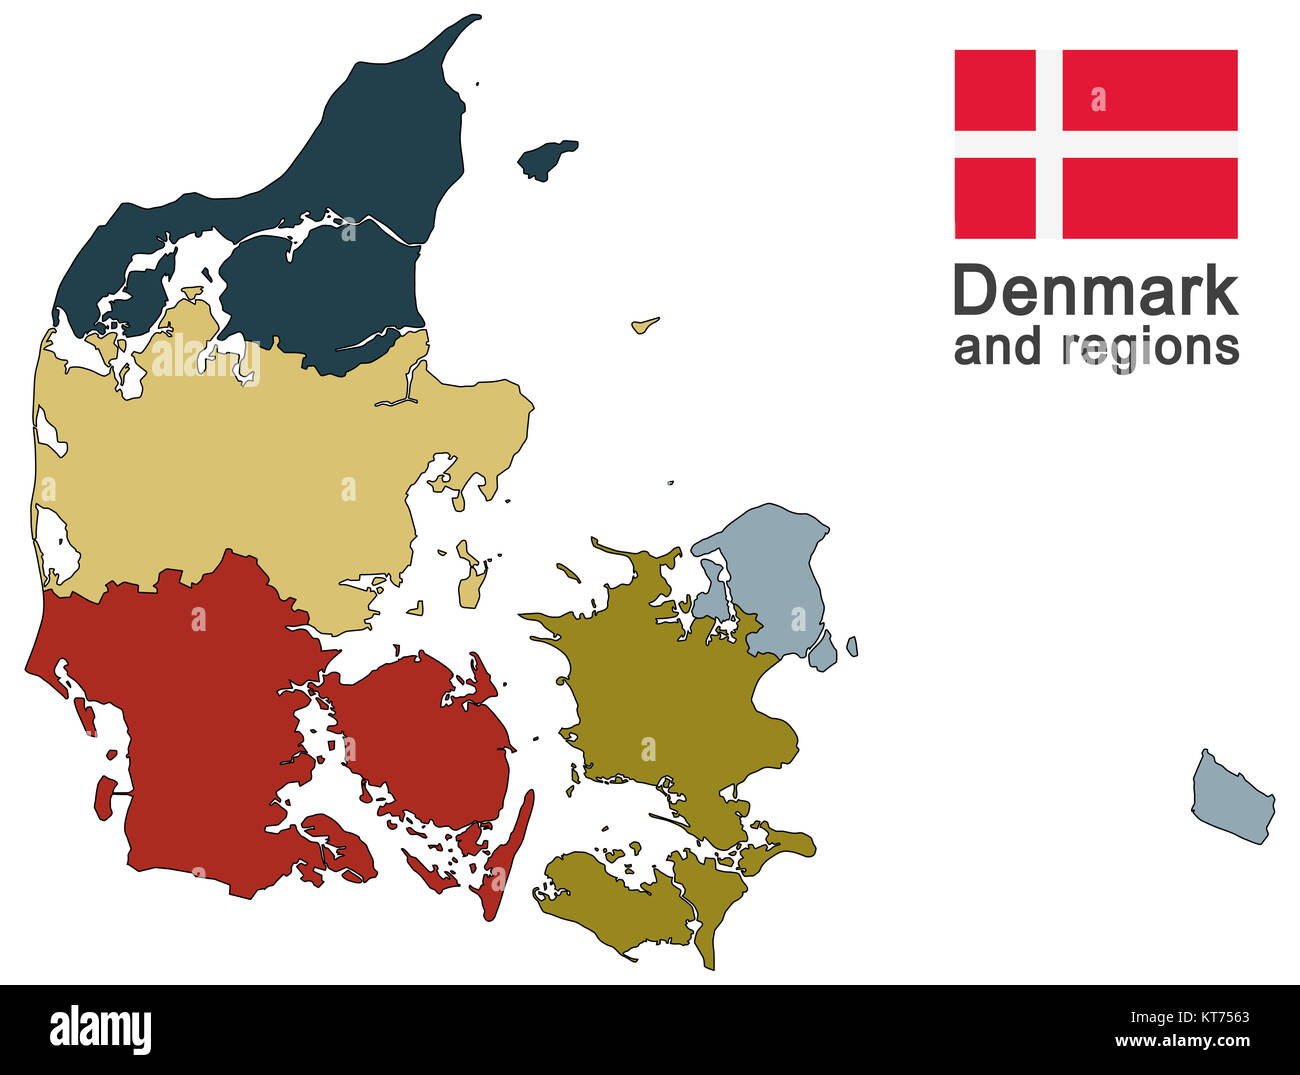 country denmark and regions - Stock Image